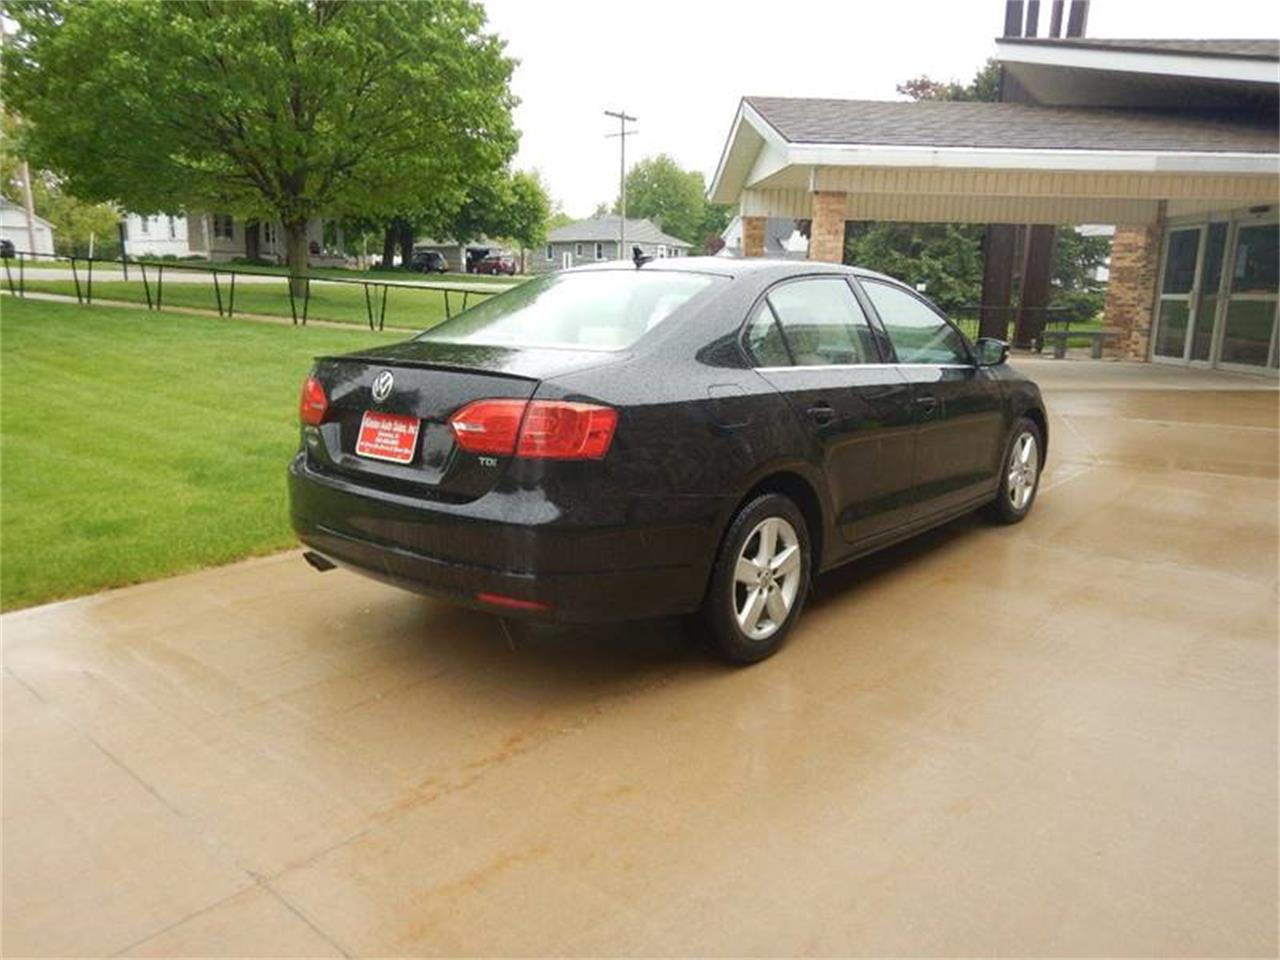 Large Picture of 2012 Jetta - $8,995.00 Offered by Kinion Auto Sales & Service - Q48I